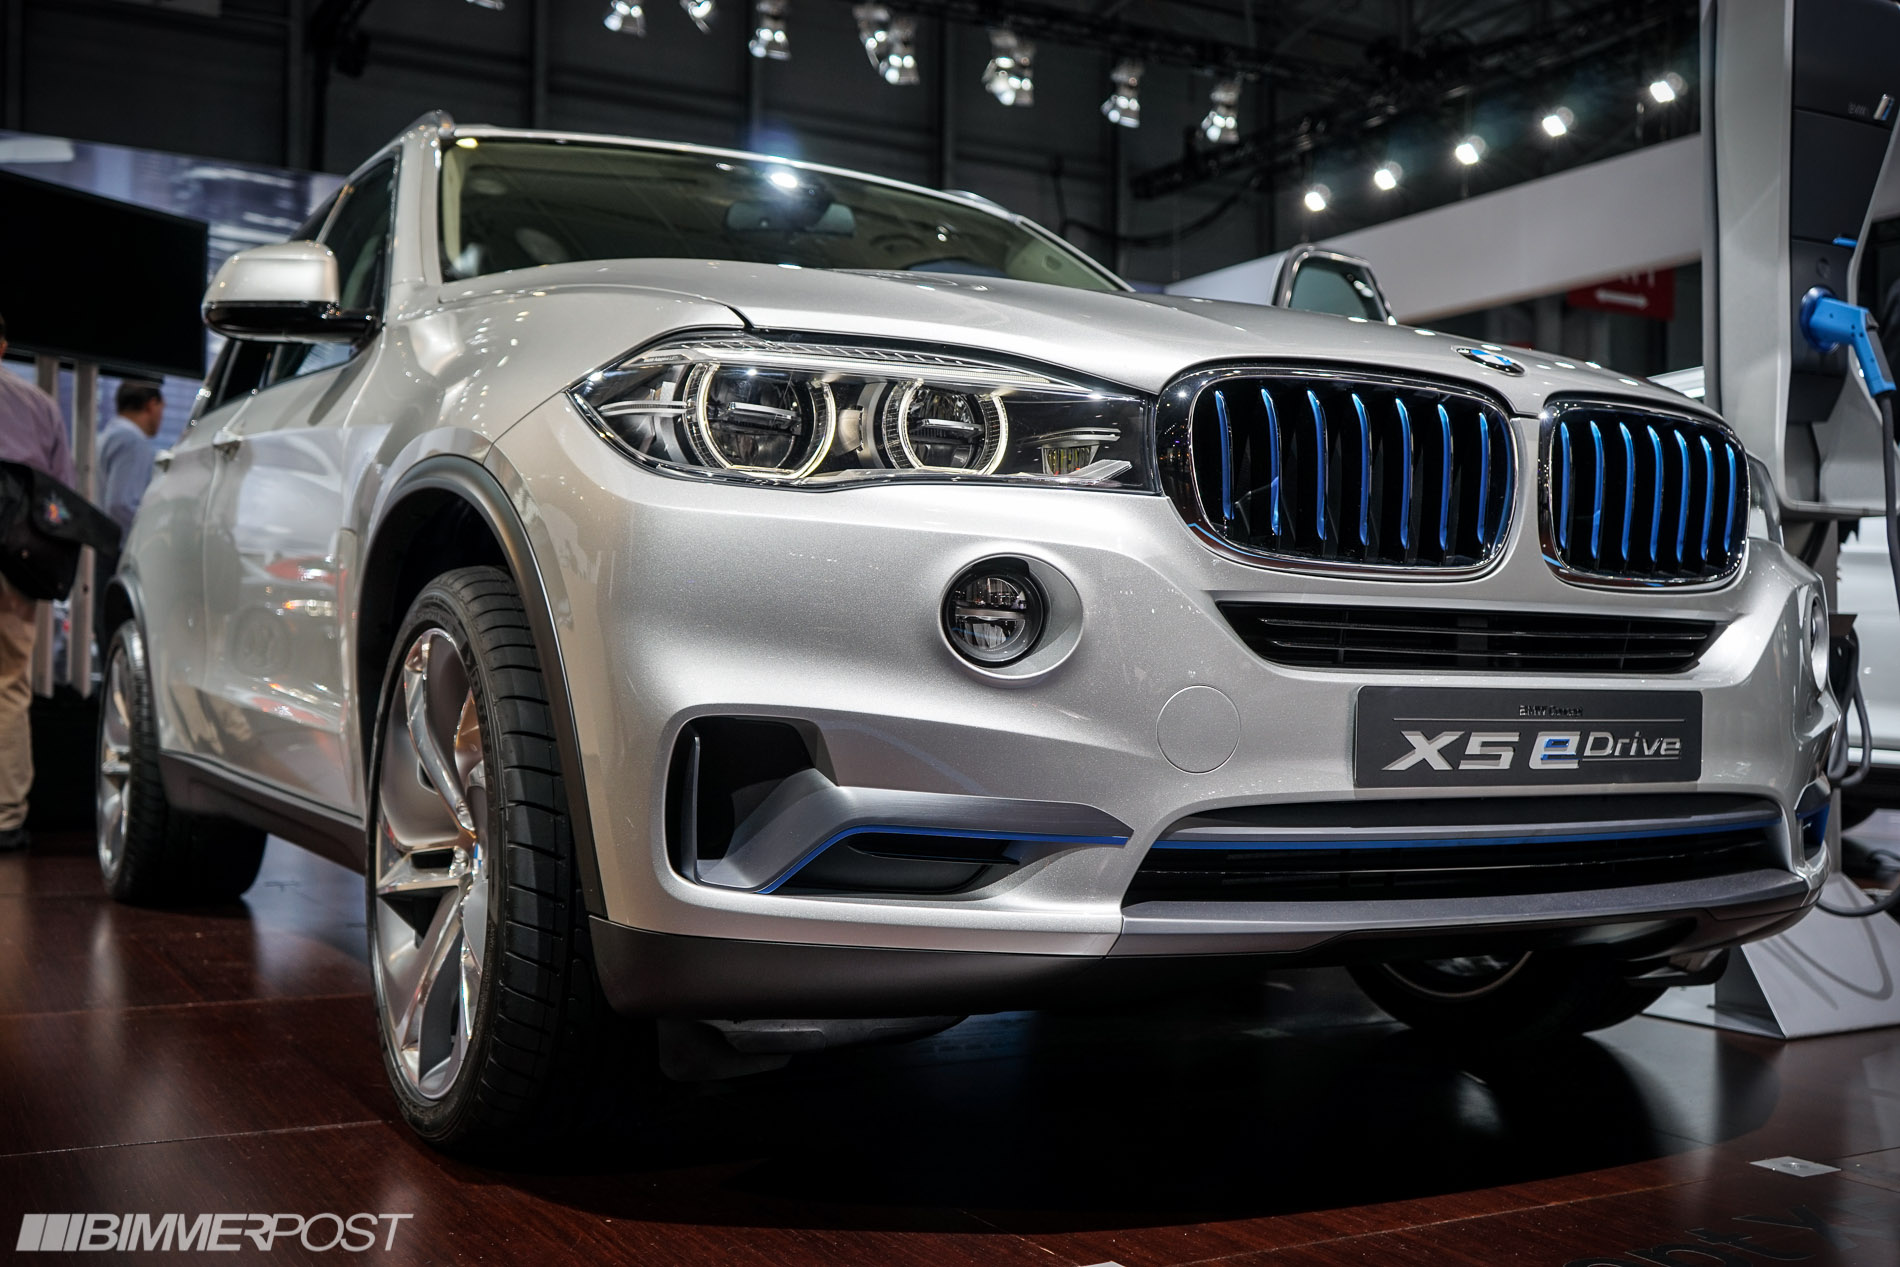 2014 nyias bmw concept x5 edrive. Black Bedroom Furniture Sets. Home Design Ideas